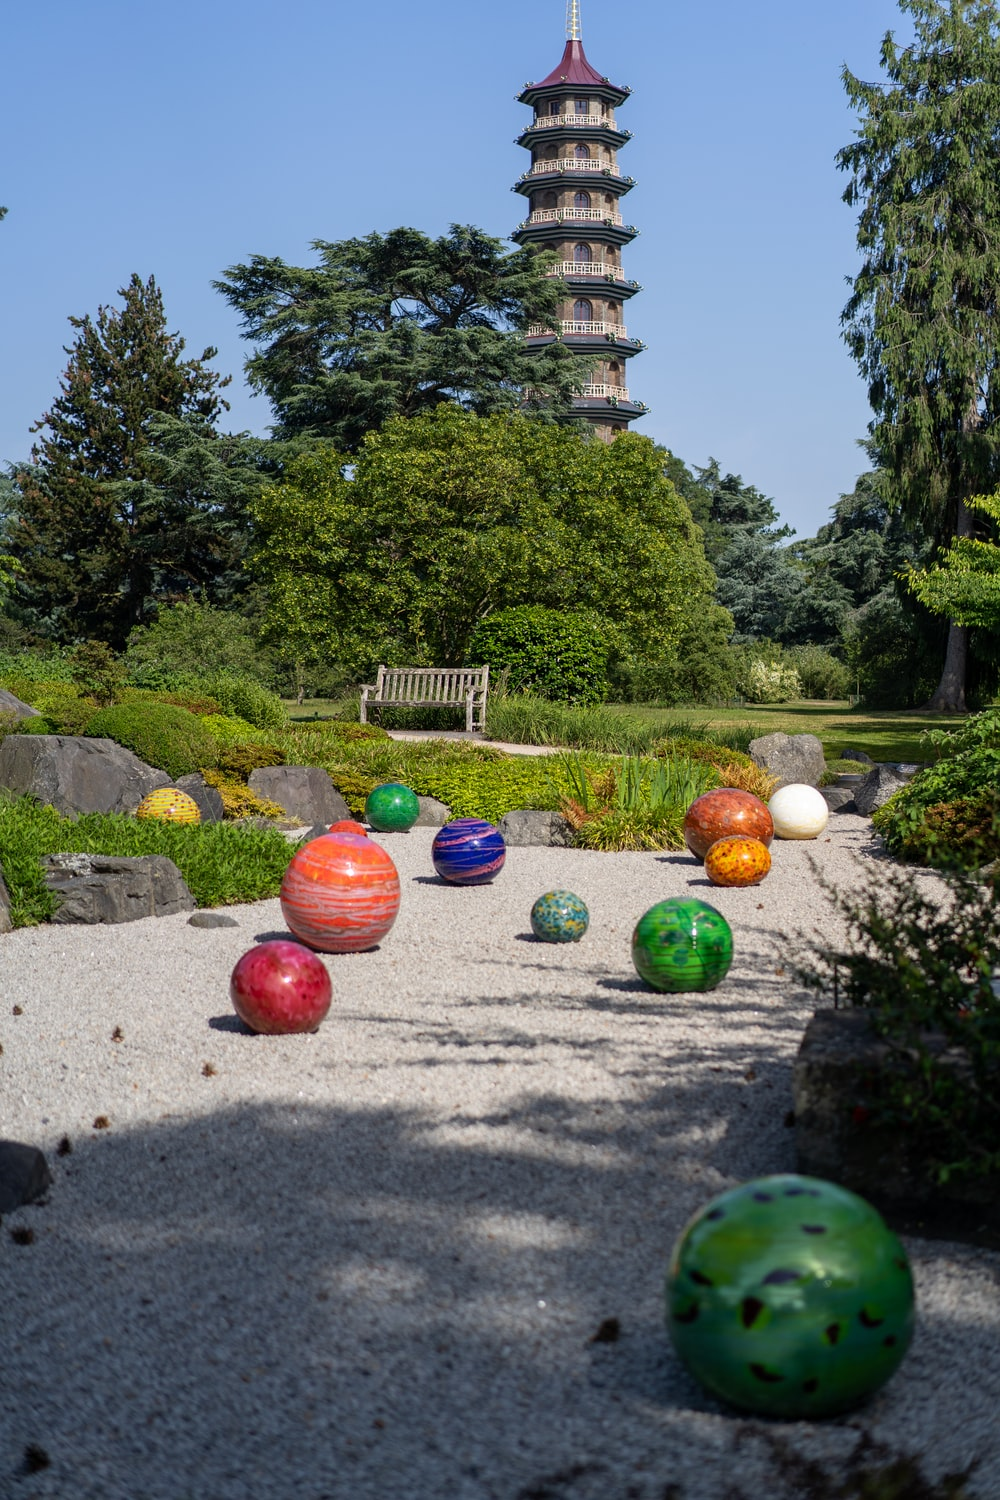 assorted-color balls near trees during daytime